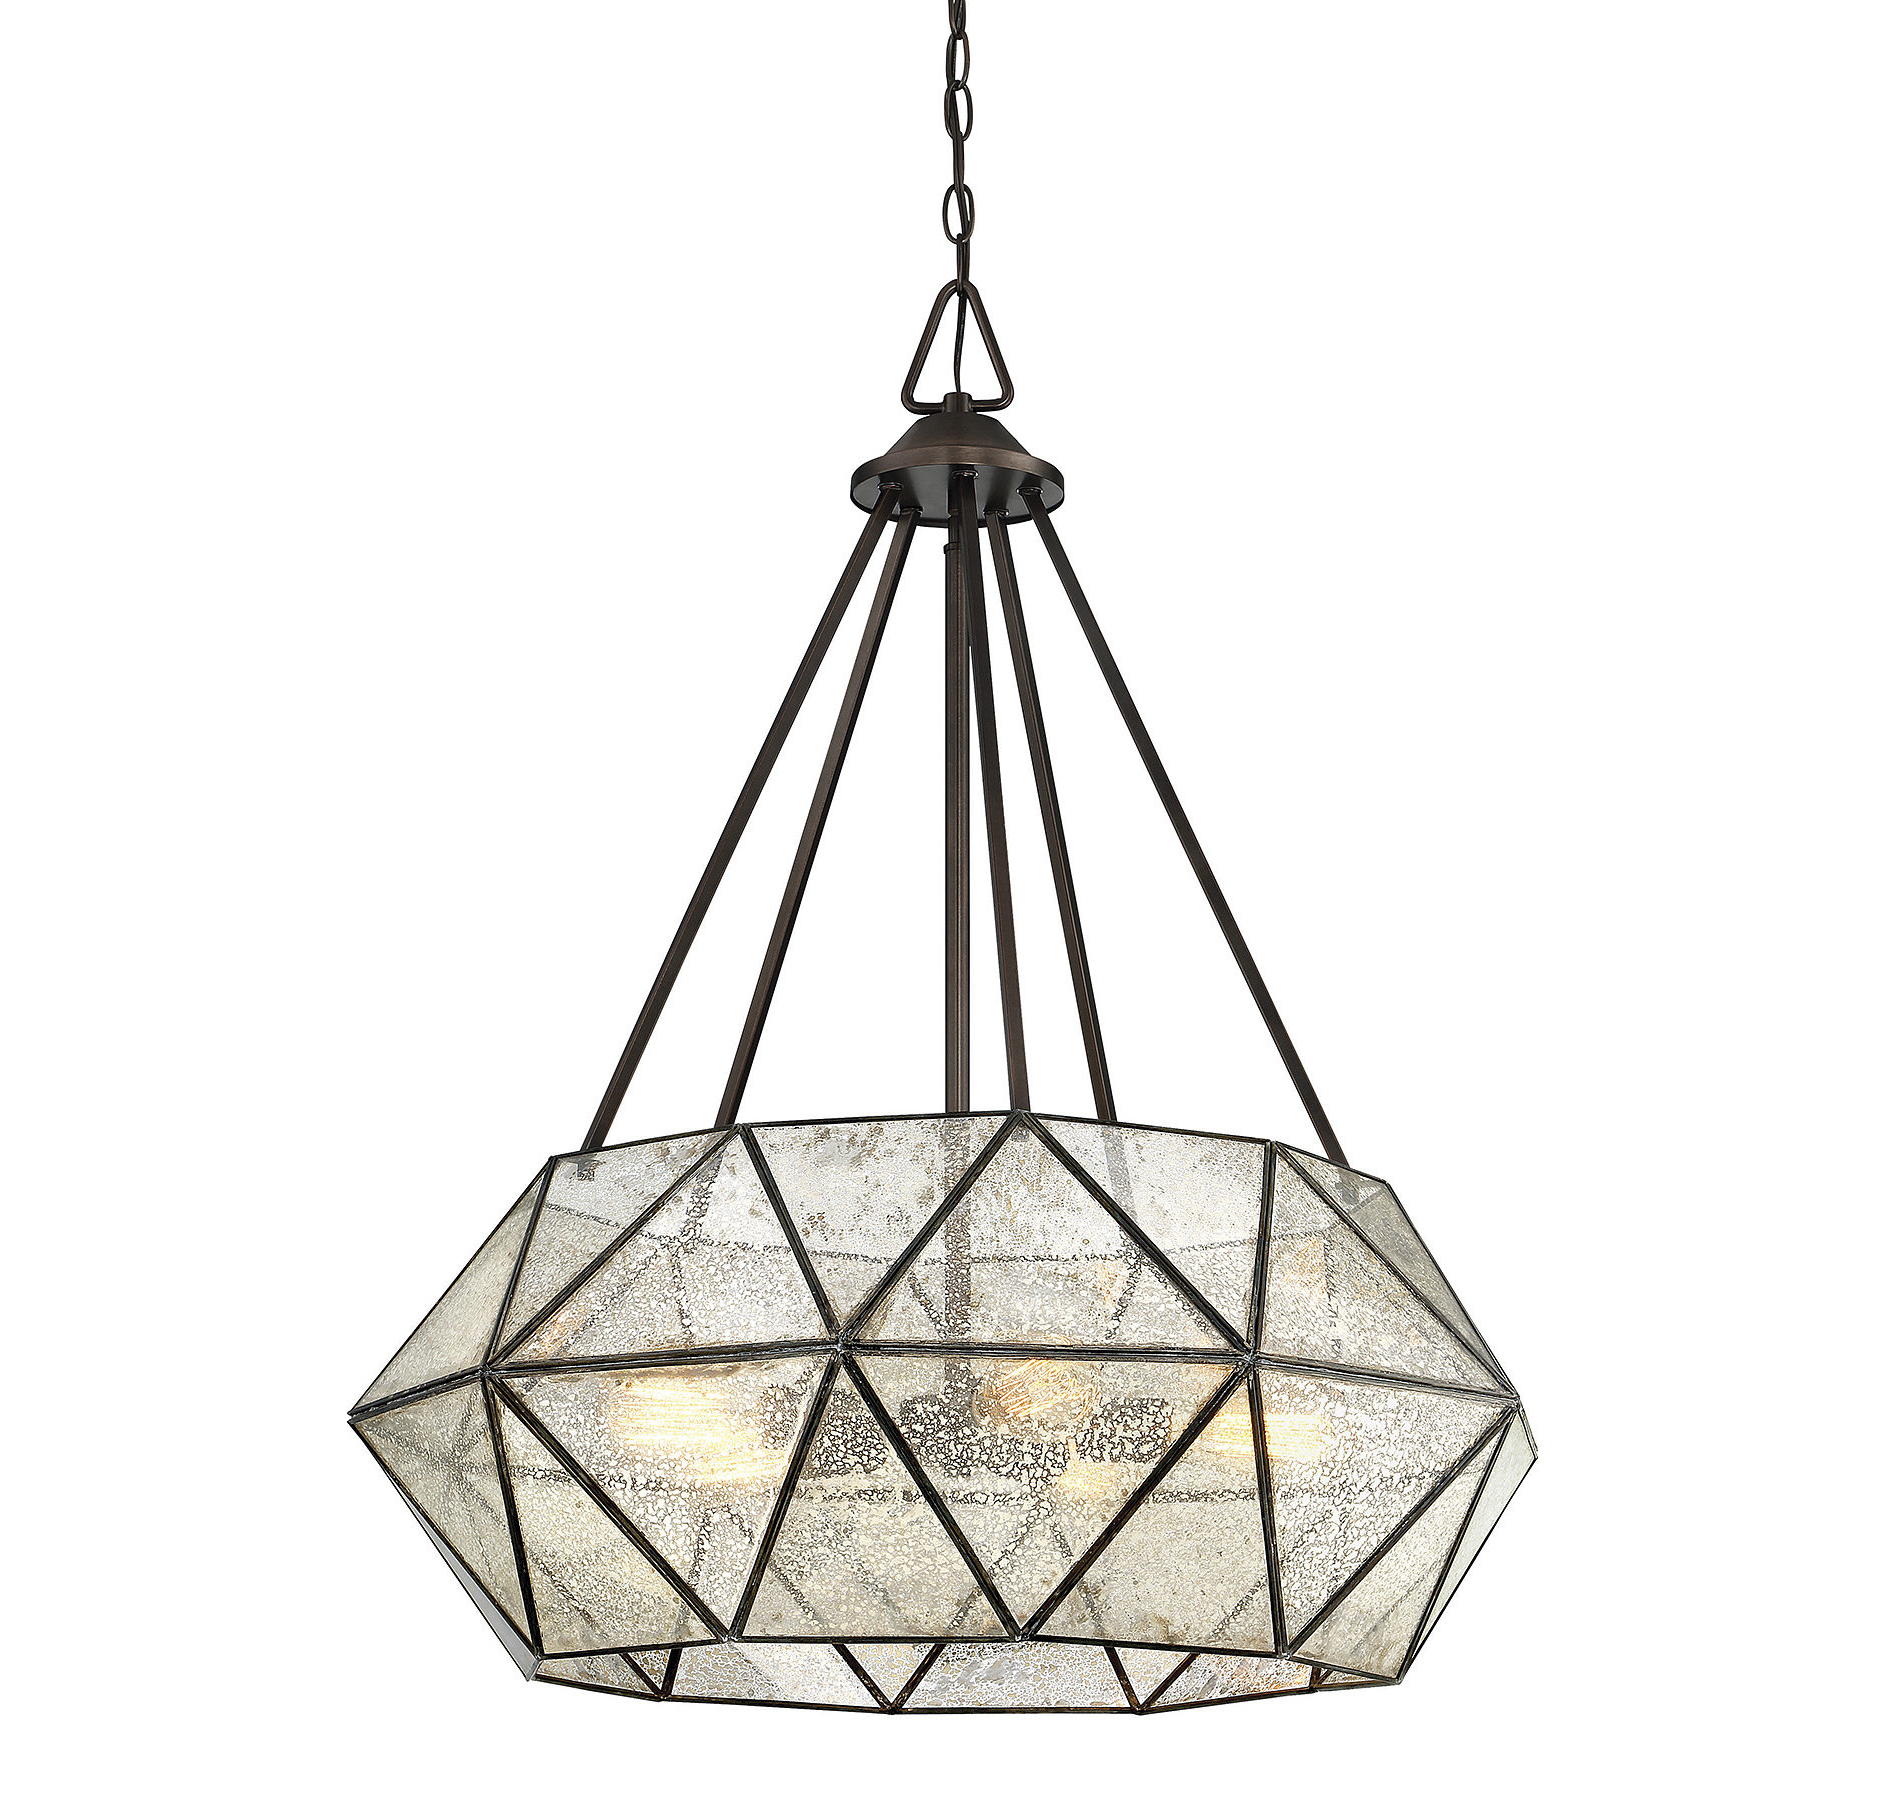 Preferred Jacey 5 Light Chandelier With Regard To Ladonna 5 Light Novelty Chandeliers (View 16 of 20)